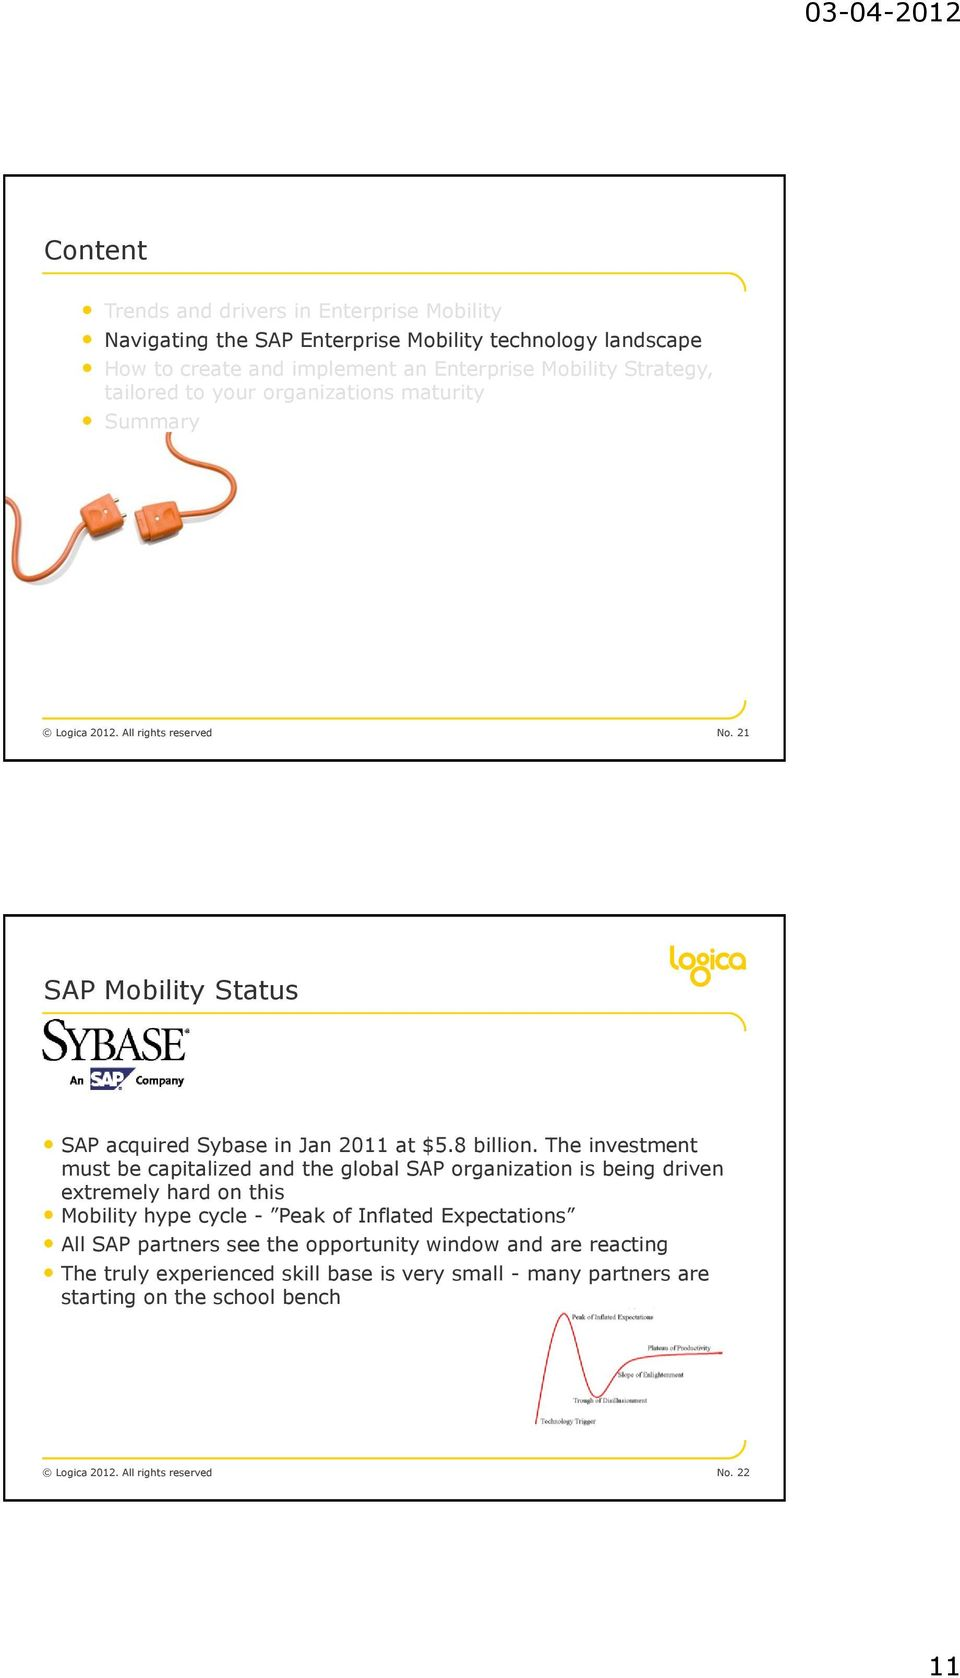 The investment must be capitalized and the global SAP organization is being driven extremely hard on this Mobility hype cycle - Peak of Inflated